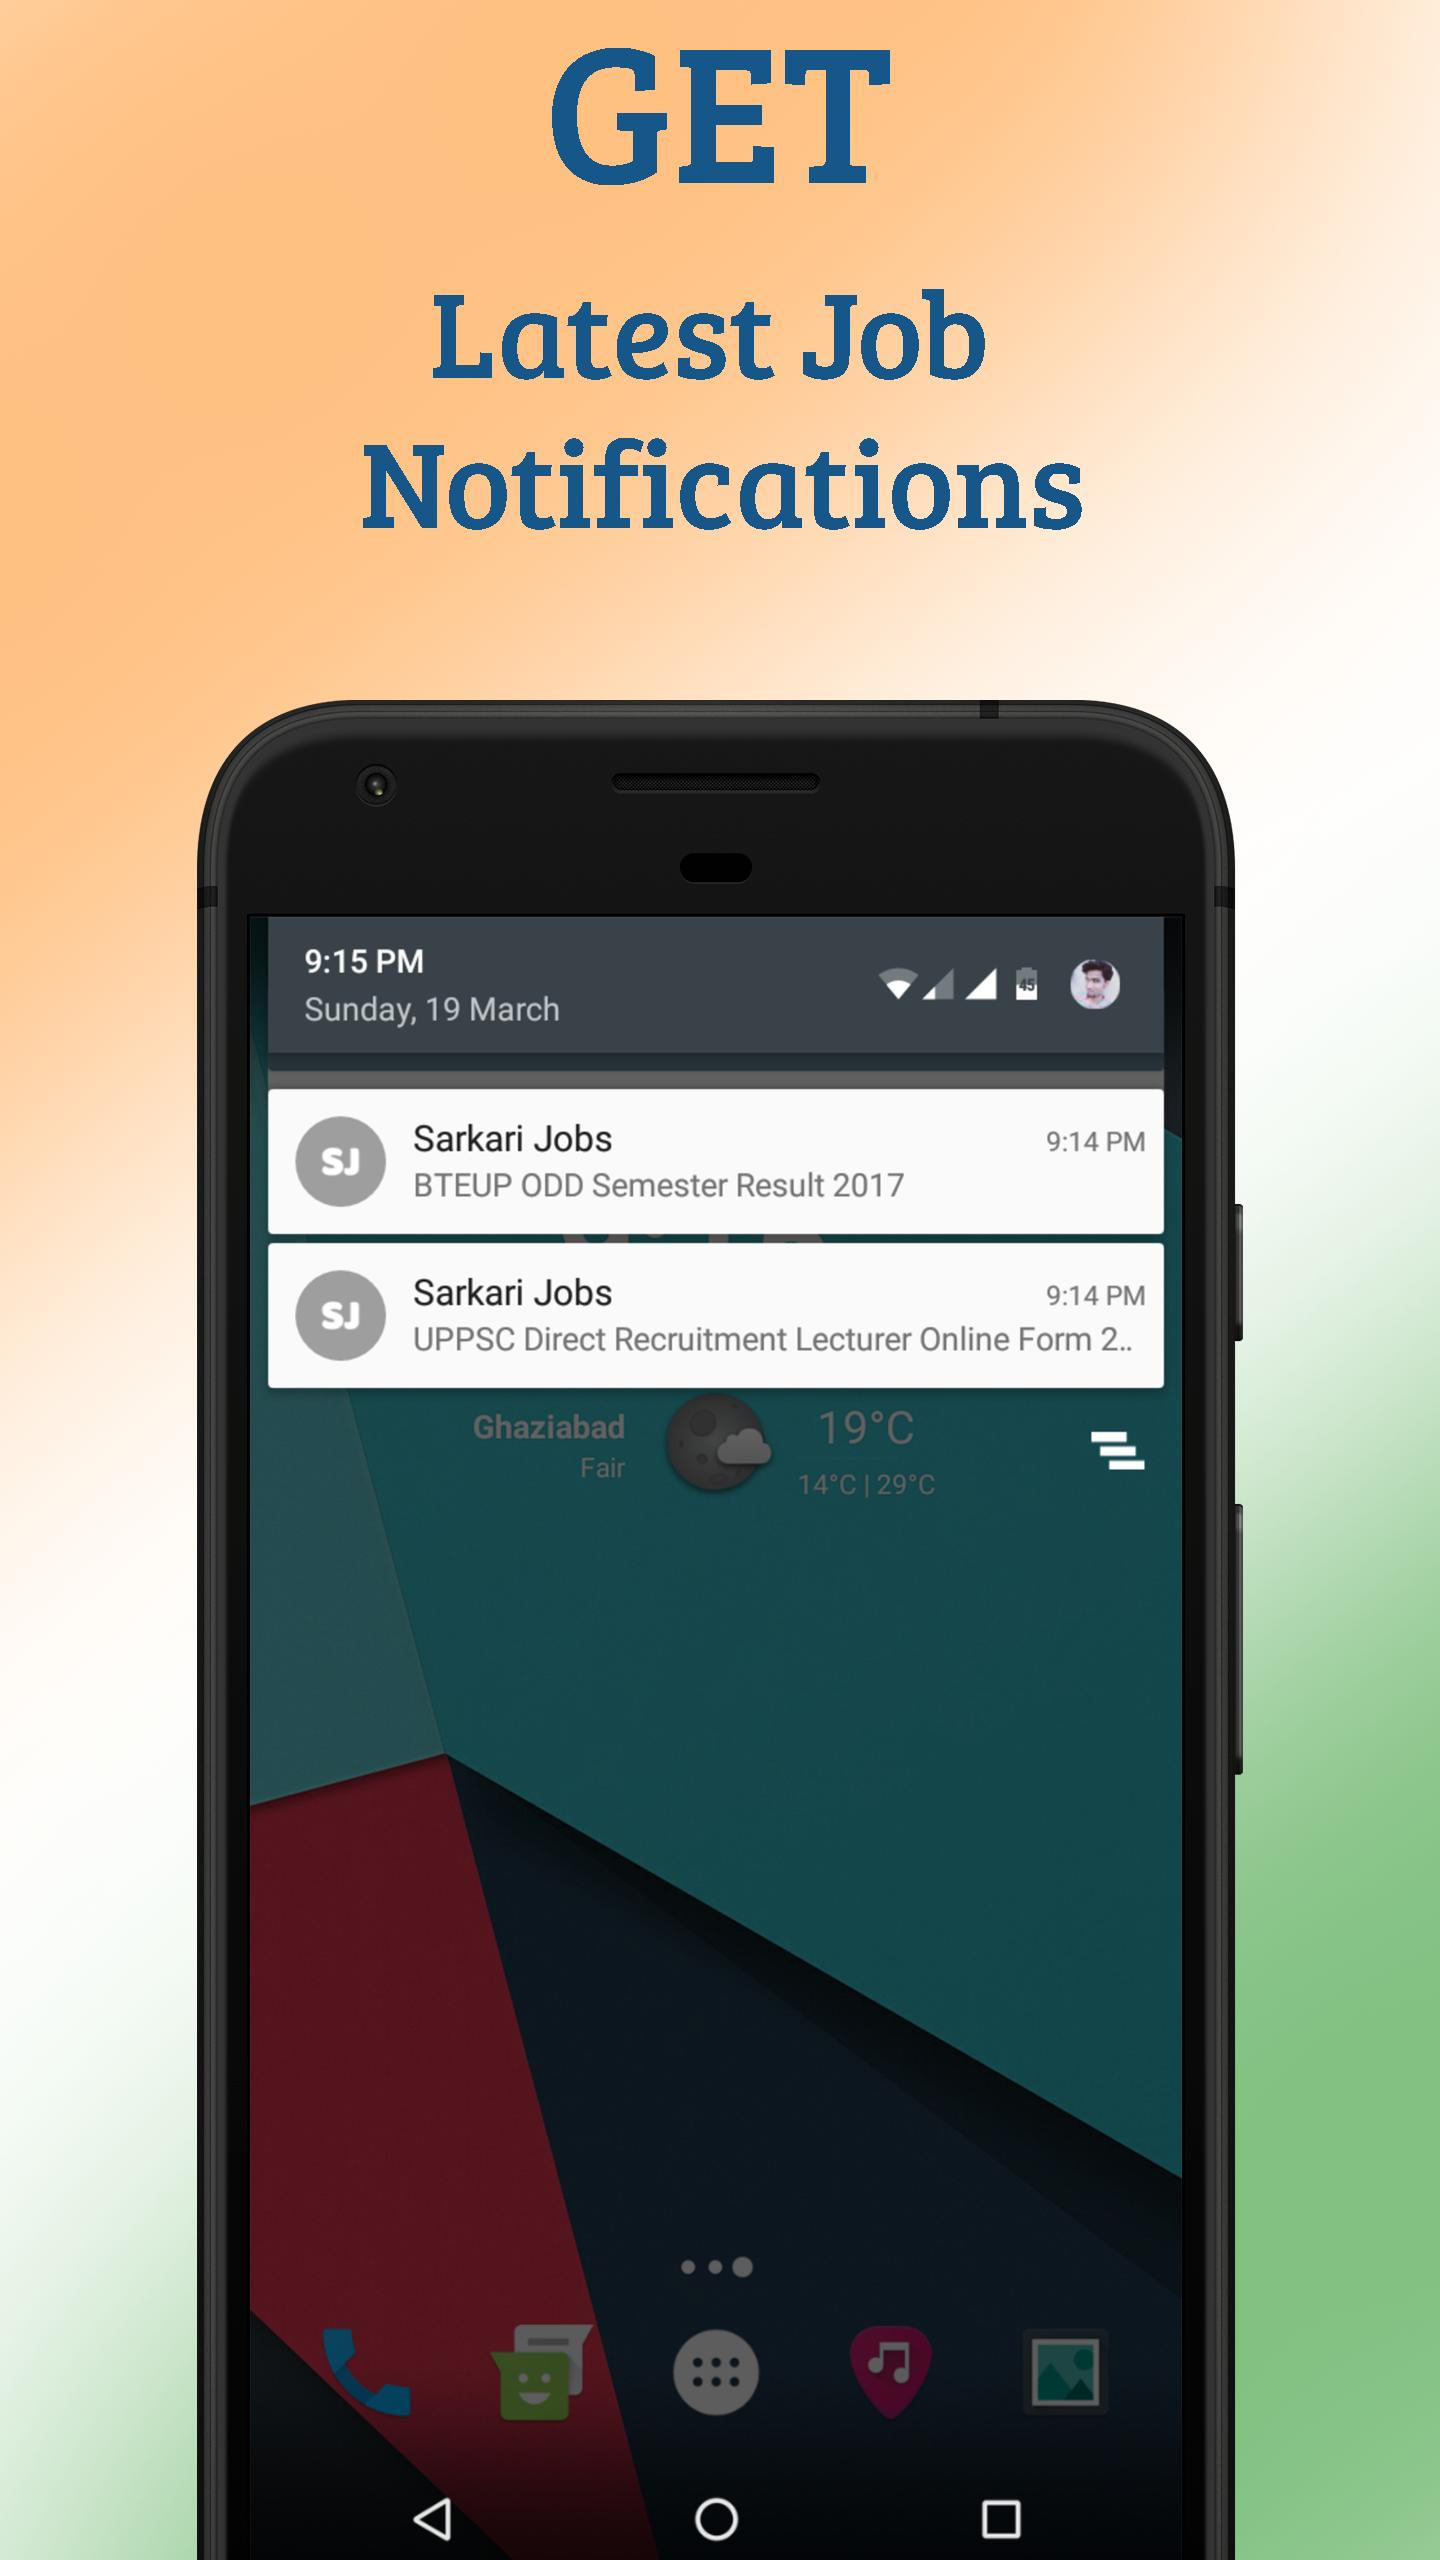 New Sarkari Result App : Latest Government Jobs for Android